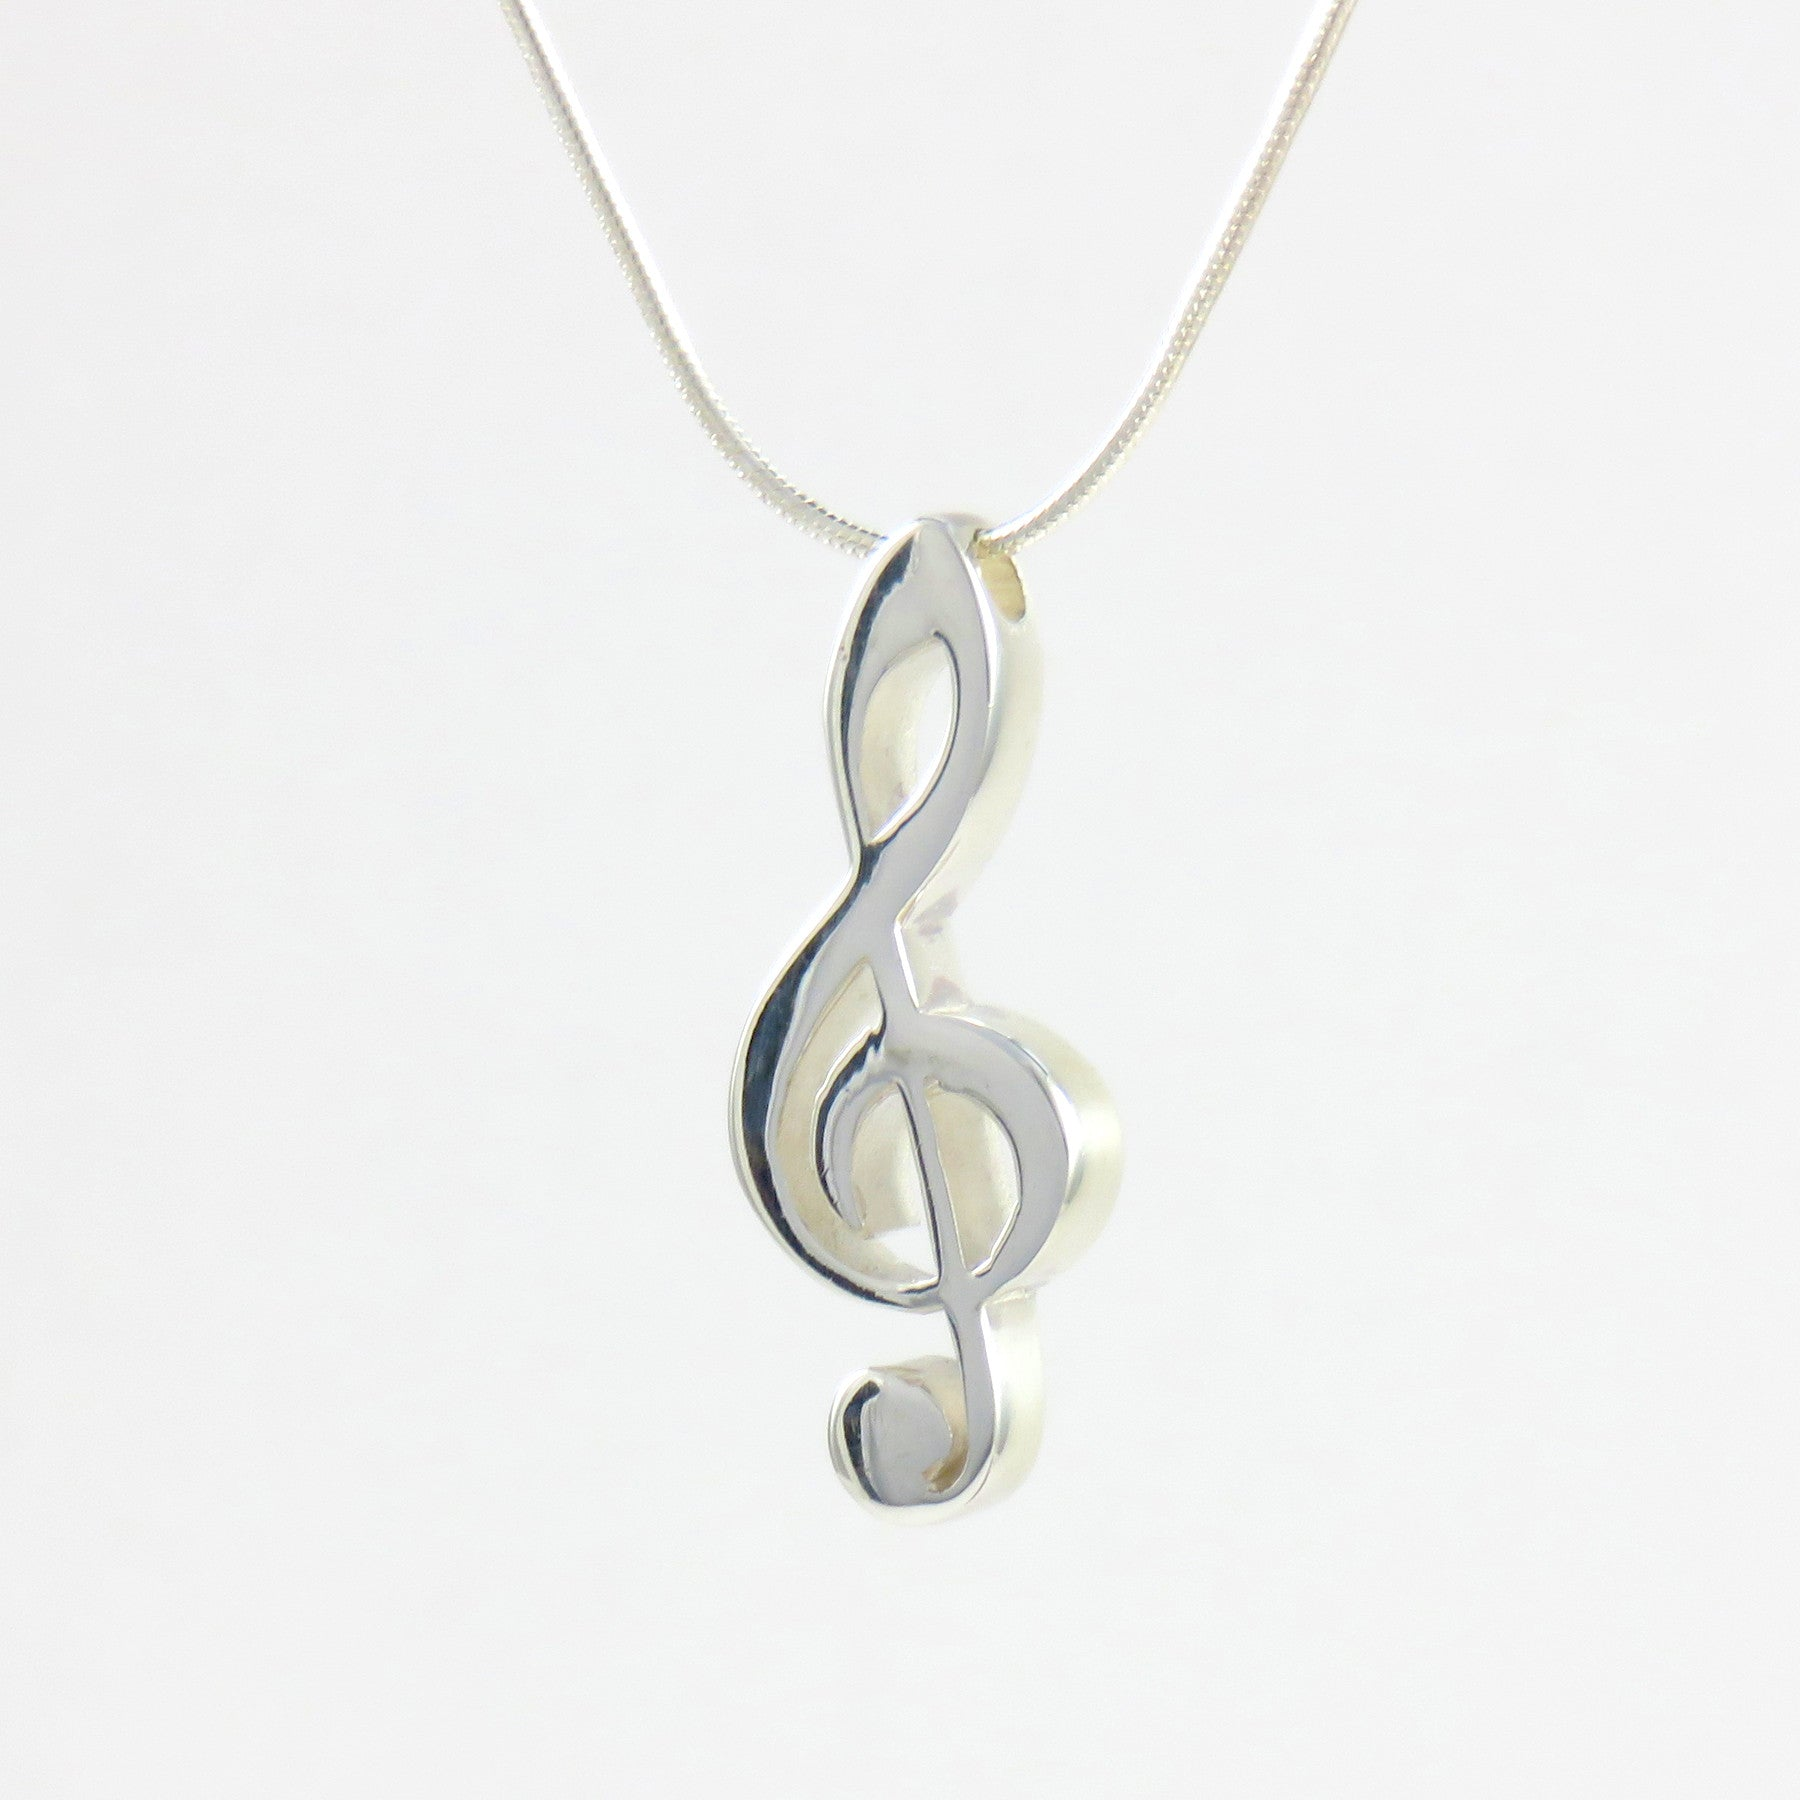 necklace clef sterling com music jewelry pendant dp silver amazon bass note